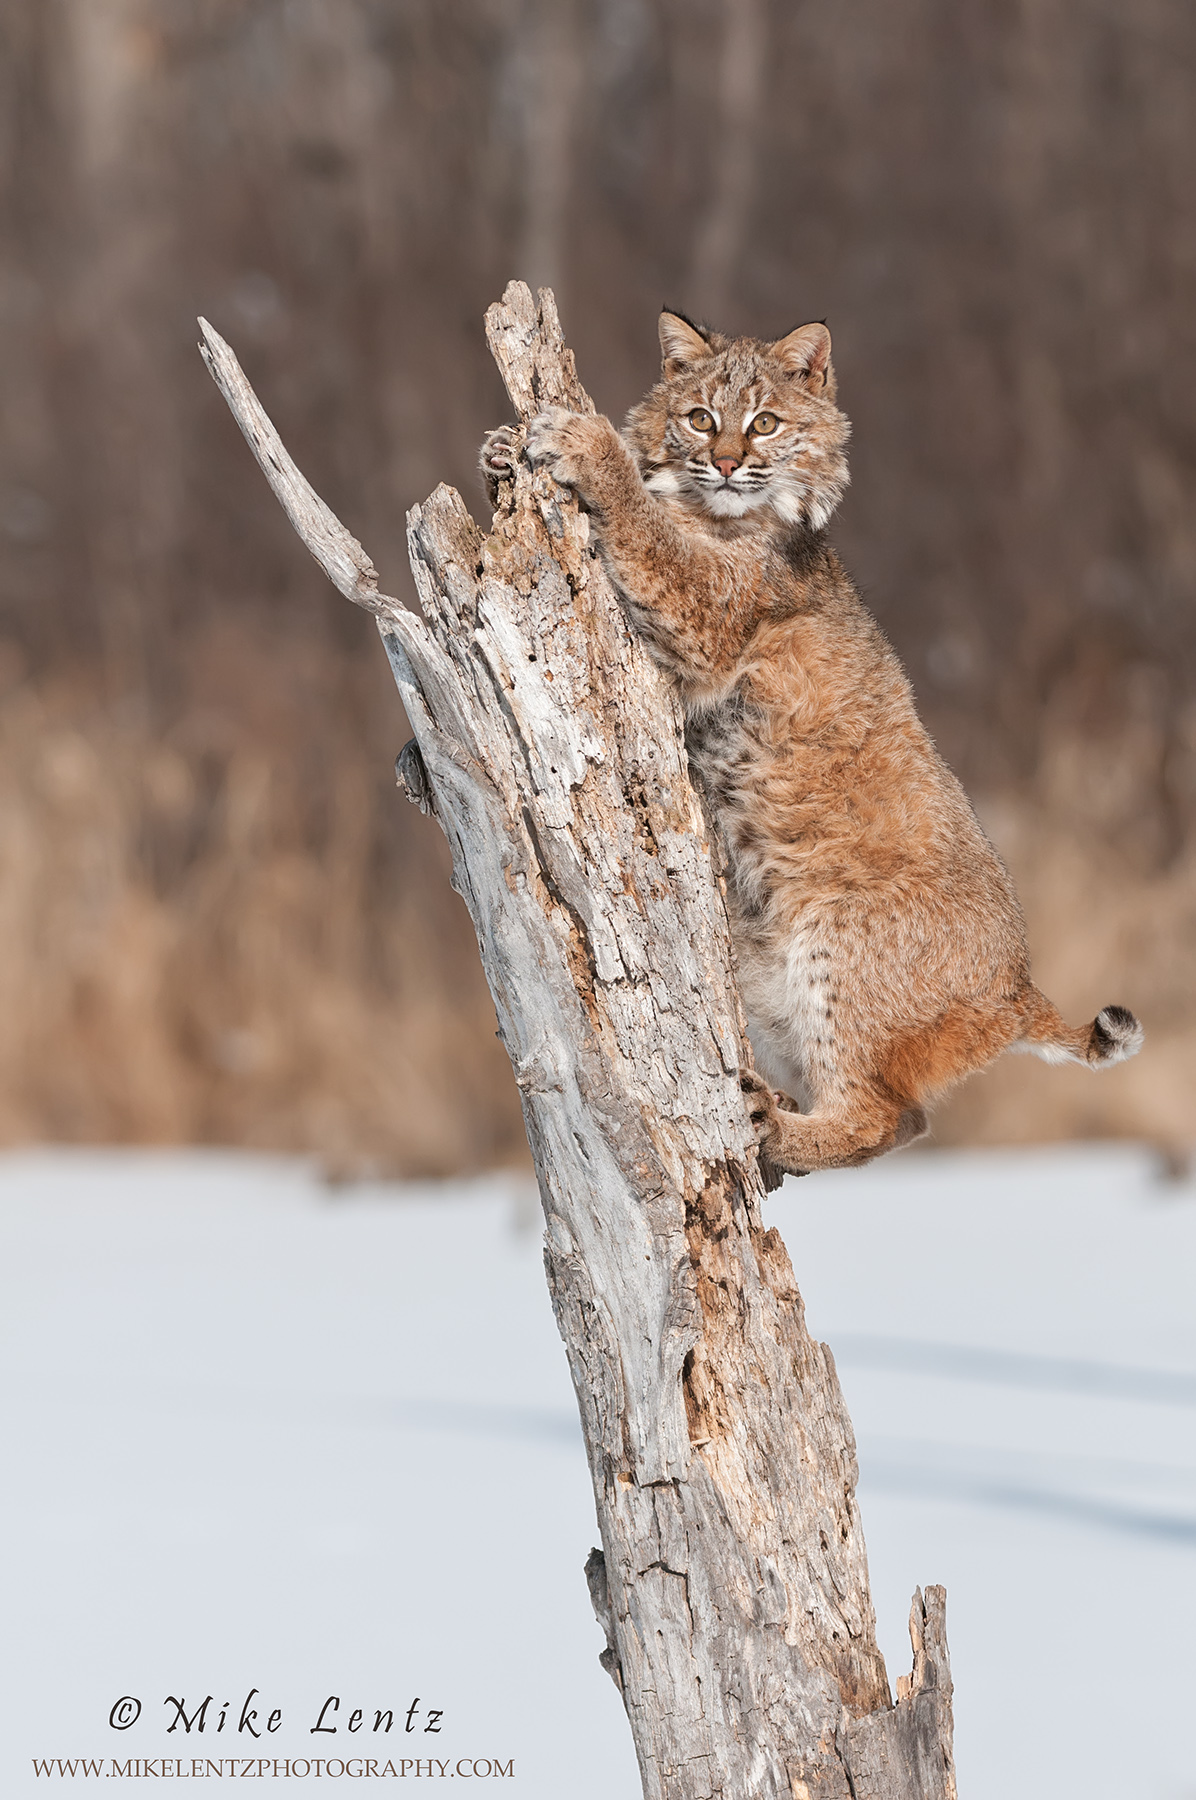 Bobcat climbs up dead stump